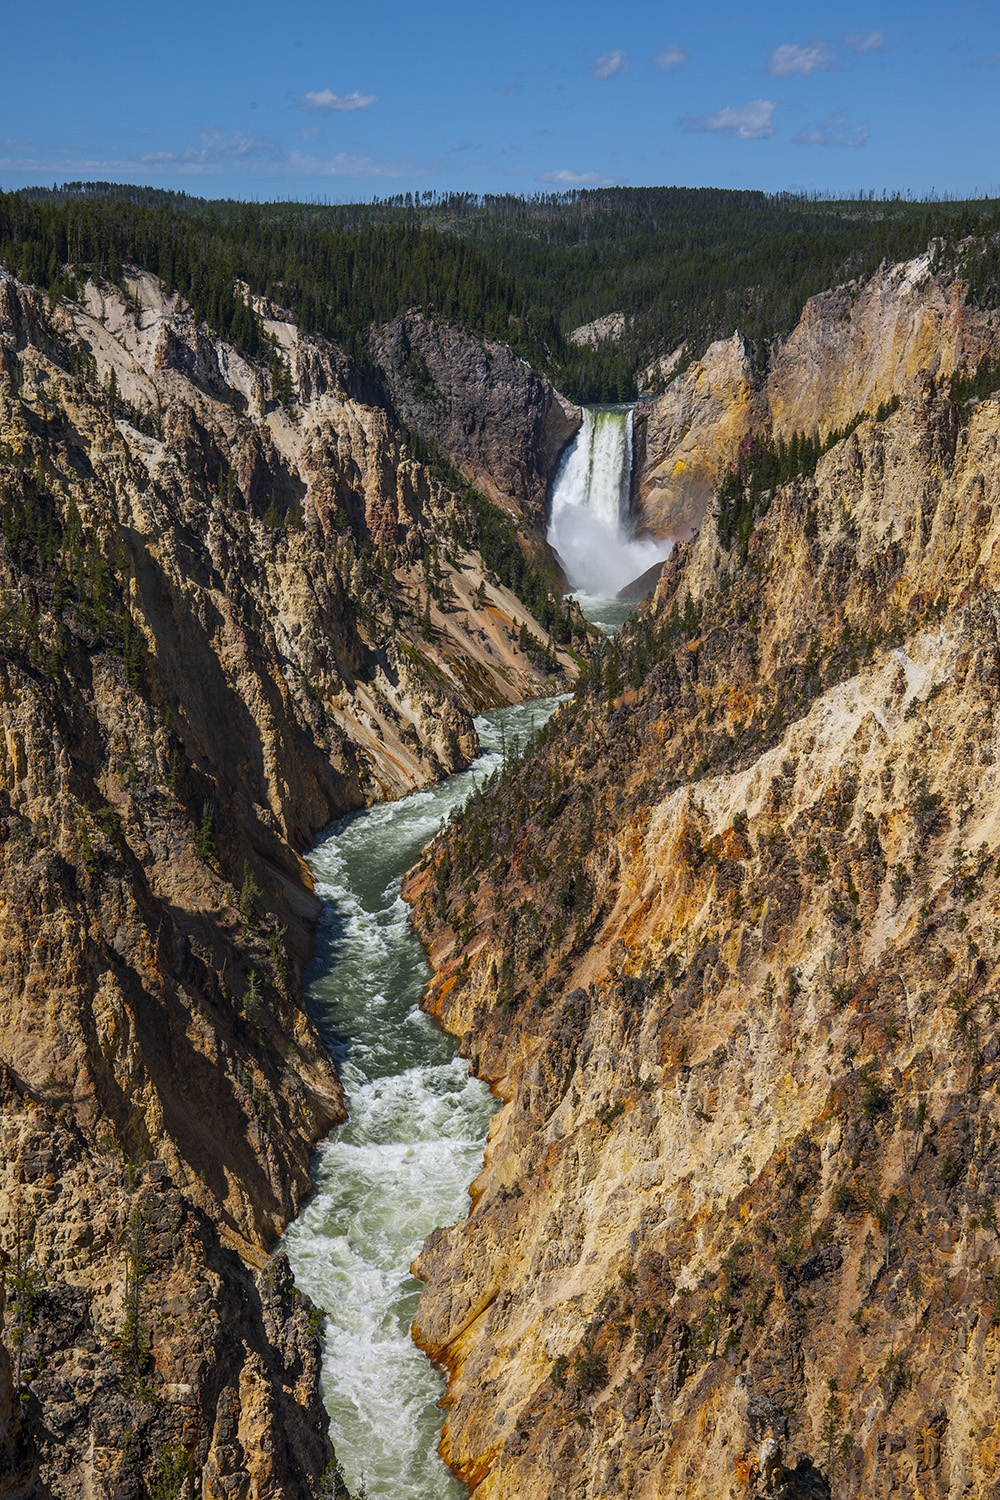 Lower Falls and the Yellowstone River